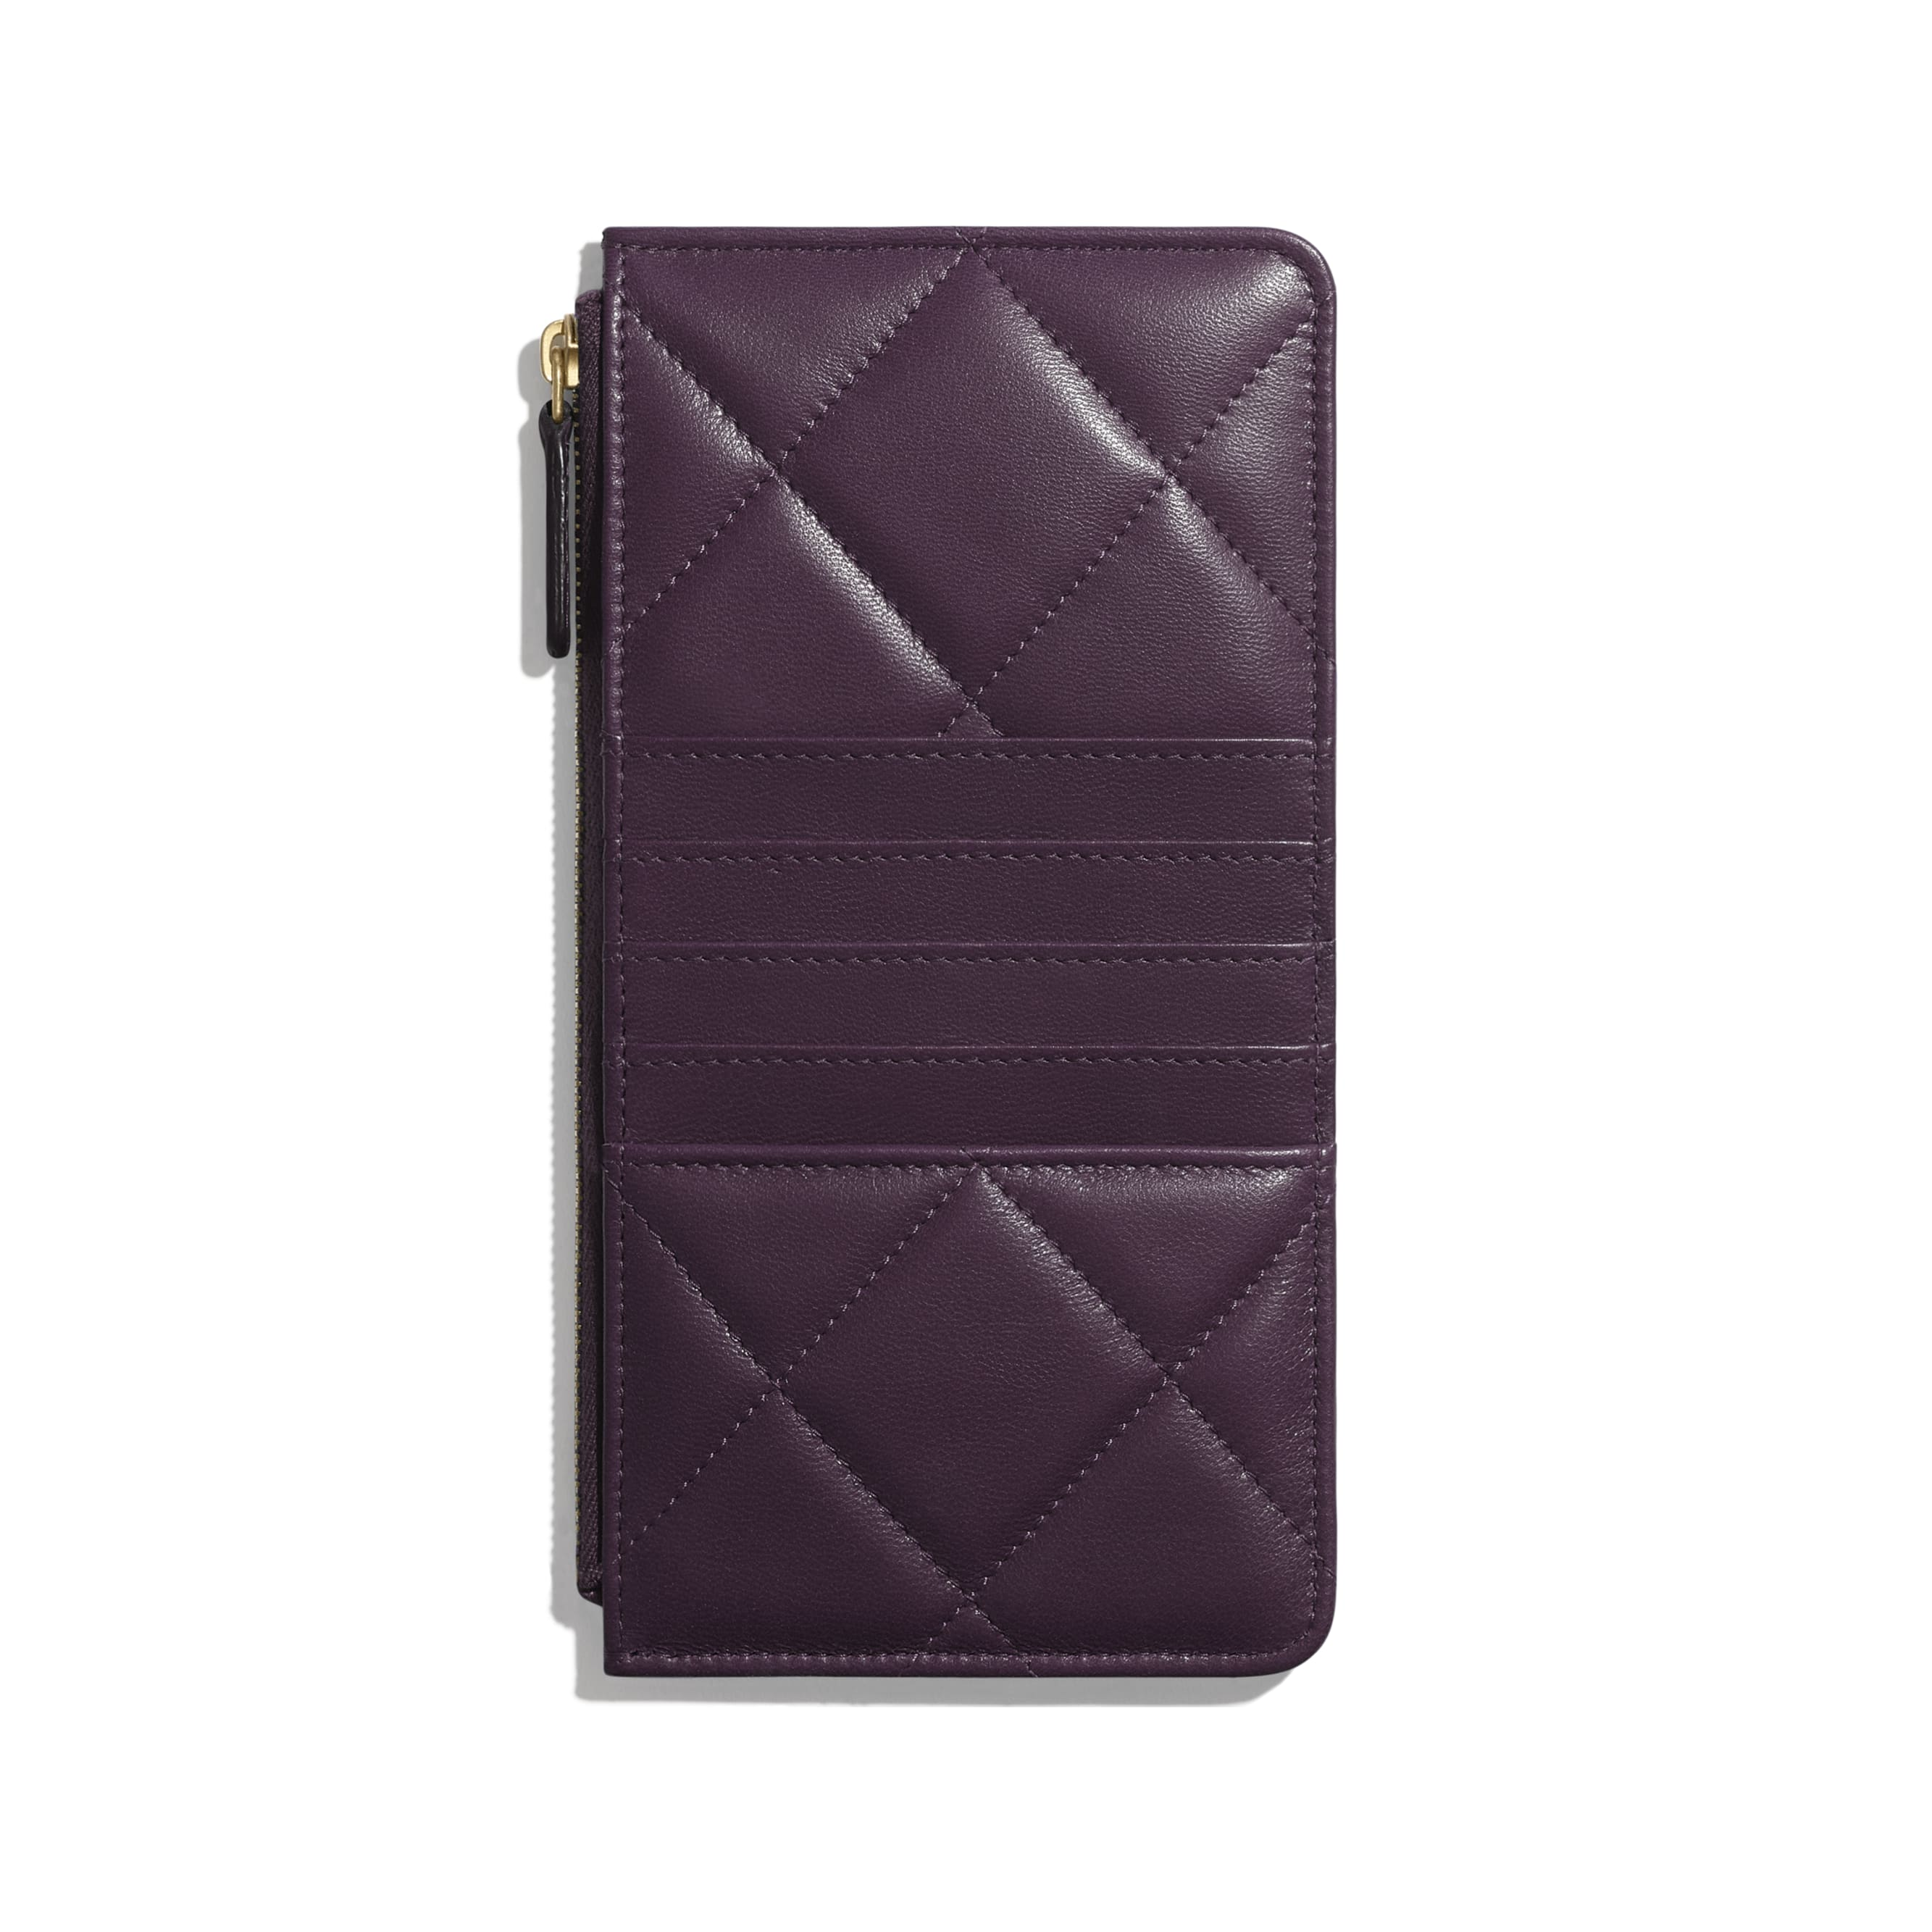 CHANEL 19 Phone & Card Holder - Purple - Shiny Goatskin & Gold-Tone Metal - CHANEL - Alternative view - see standard sized version